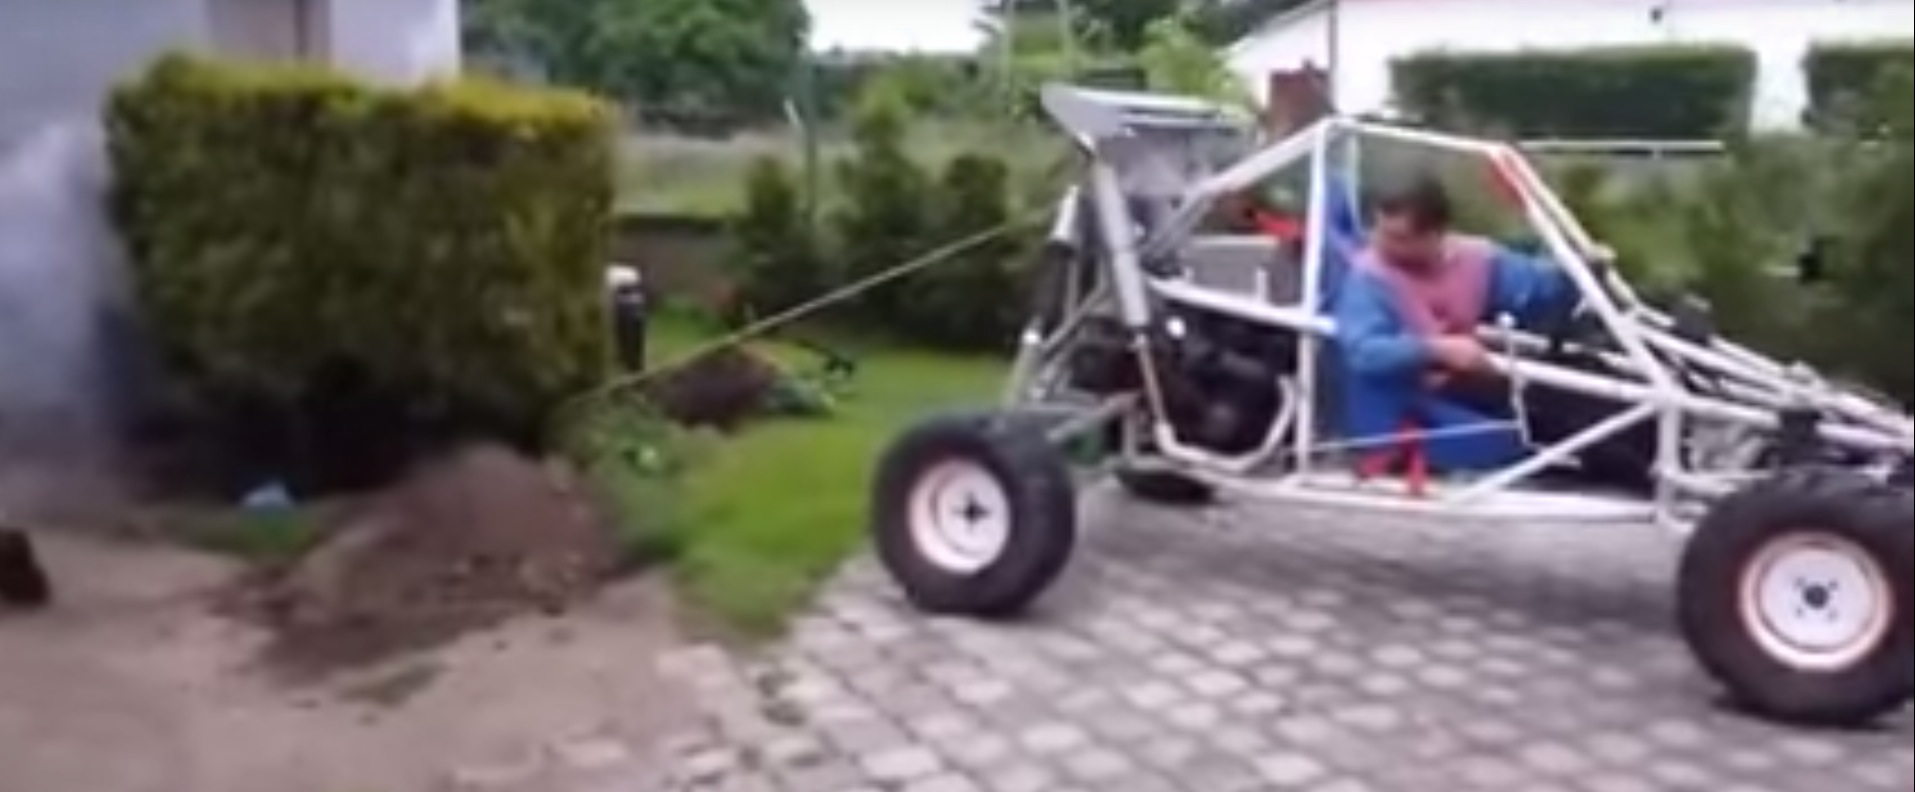 Buggy driver tries to pull bush out of the ground plant fights 7 photos sciox Choice Image